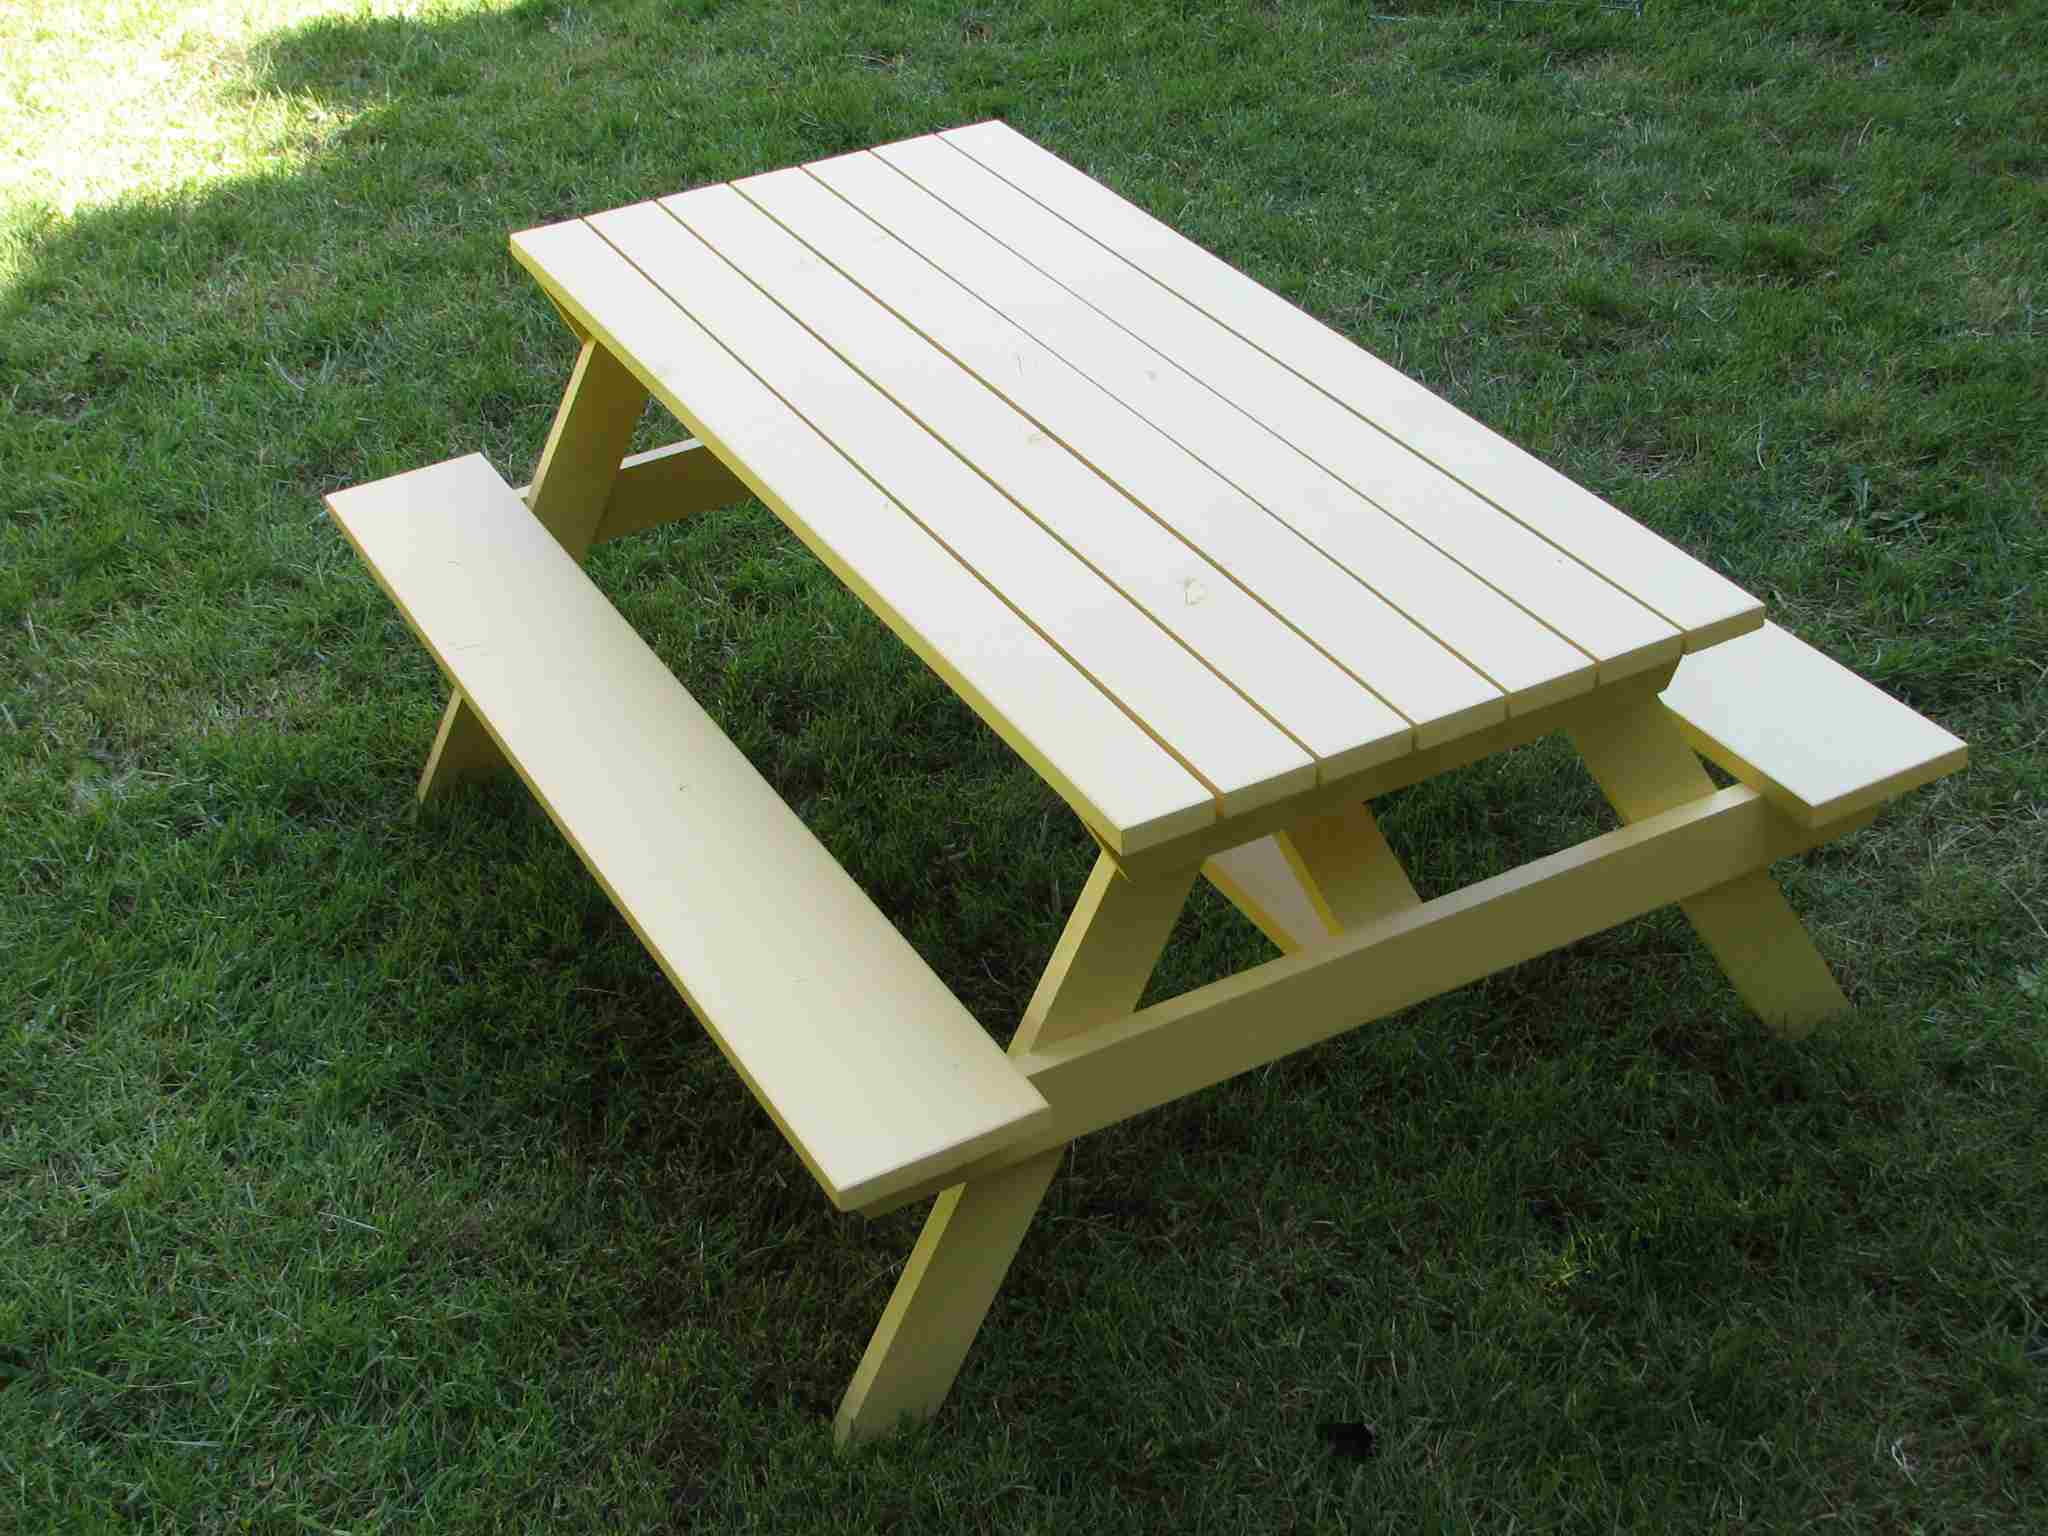 Free Picnic Table Plans In All Shapes And Sizes - Treated lumber picnic table